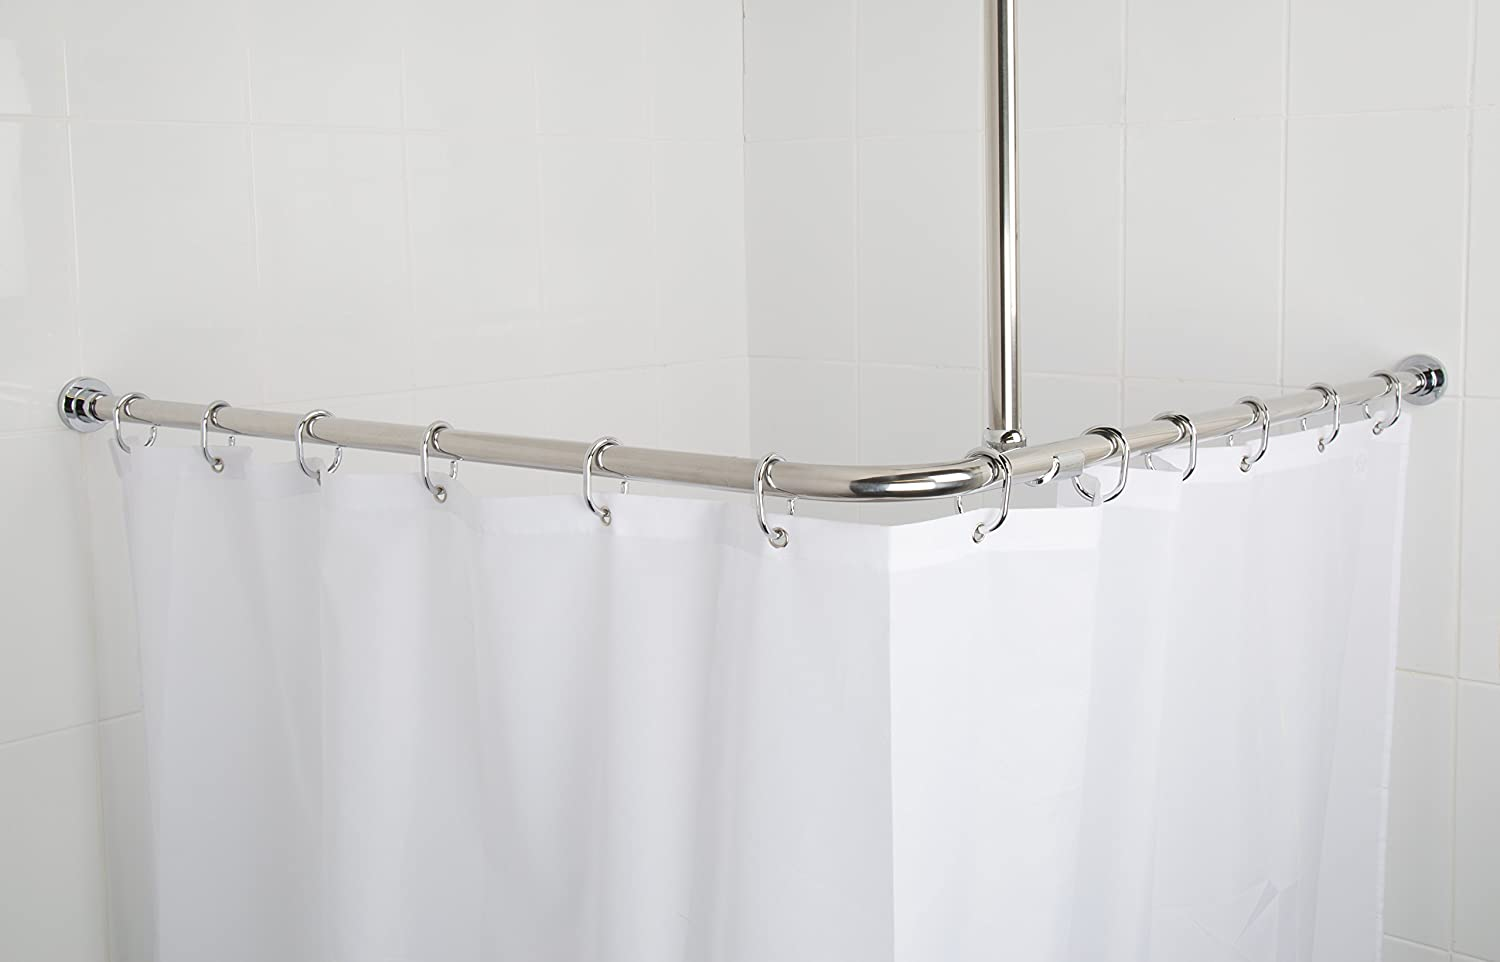 Croydex Superline Stainless Steel Modular Shower Rod Kit with Ceiling Support and Curtain Rings Can Be Fitted L-Shaped Large L-Shaped U-Shaped or Straight